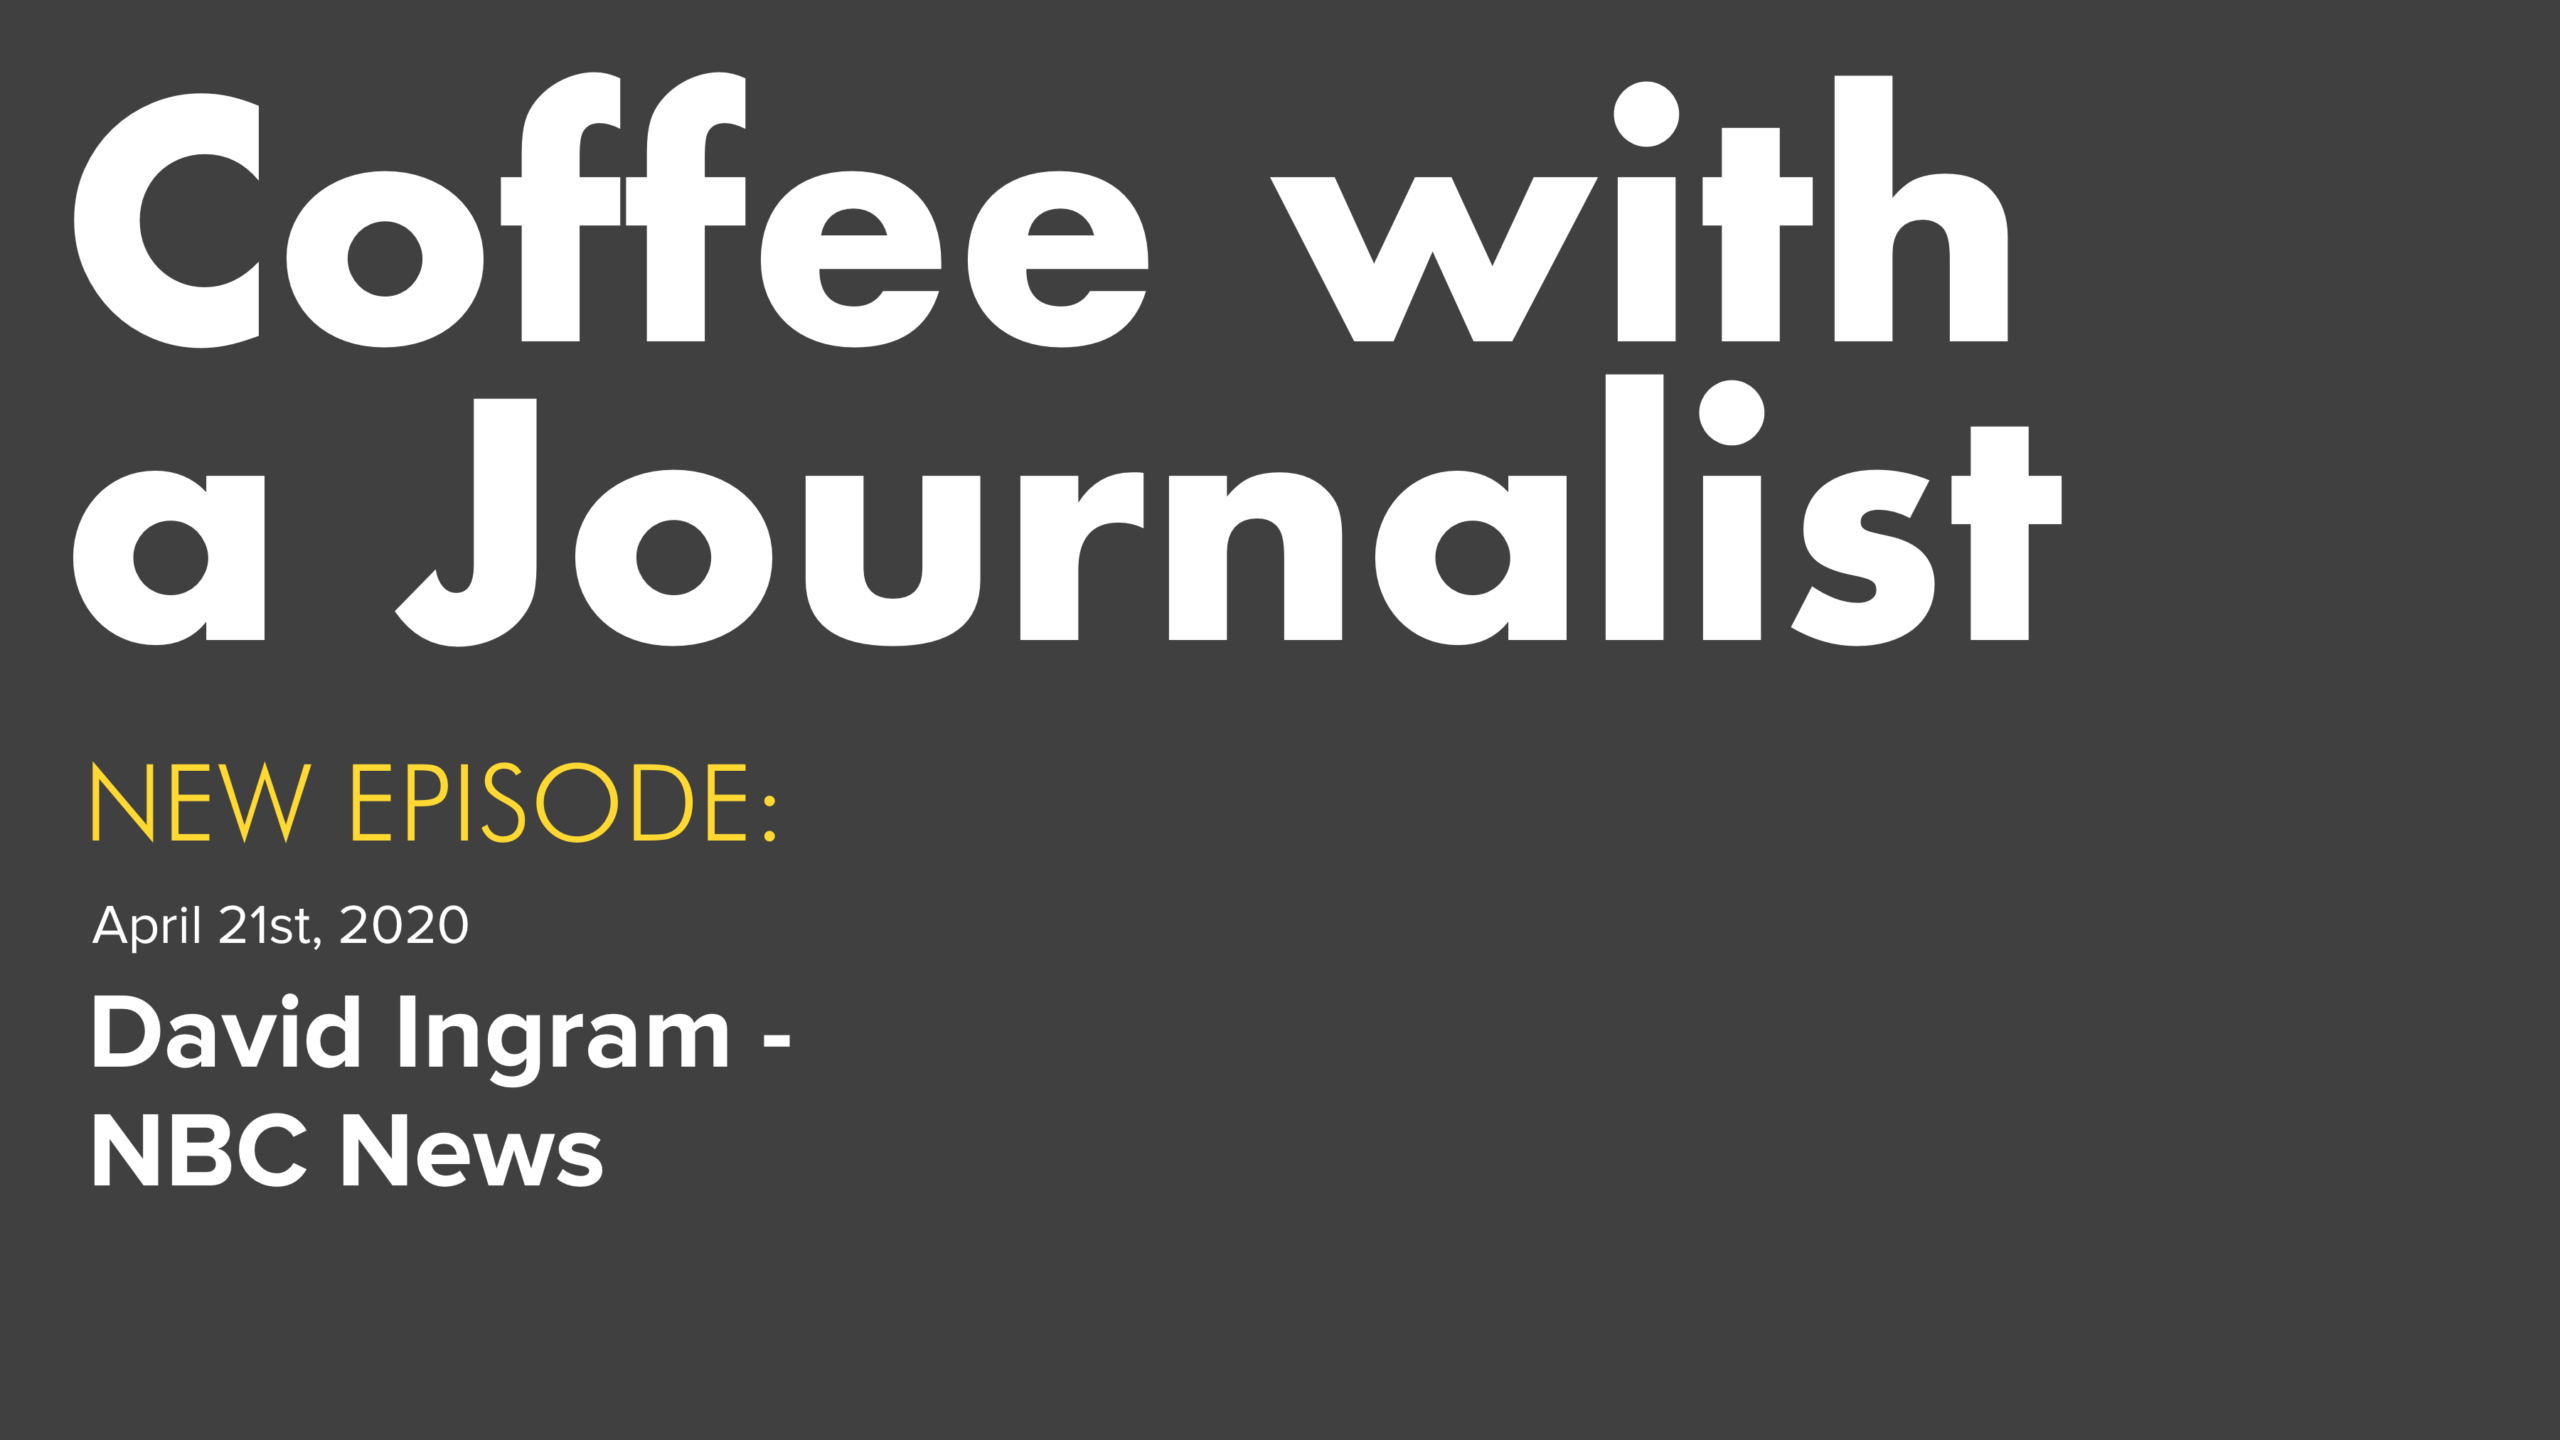 Coffee With A Journalist - David Ingram, NBC News